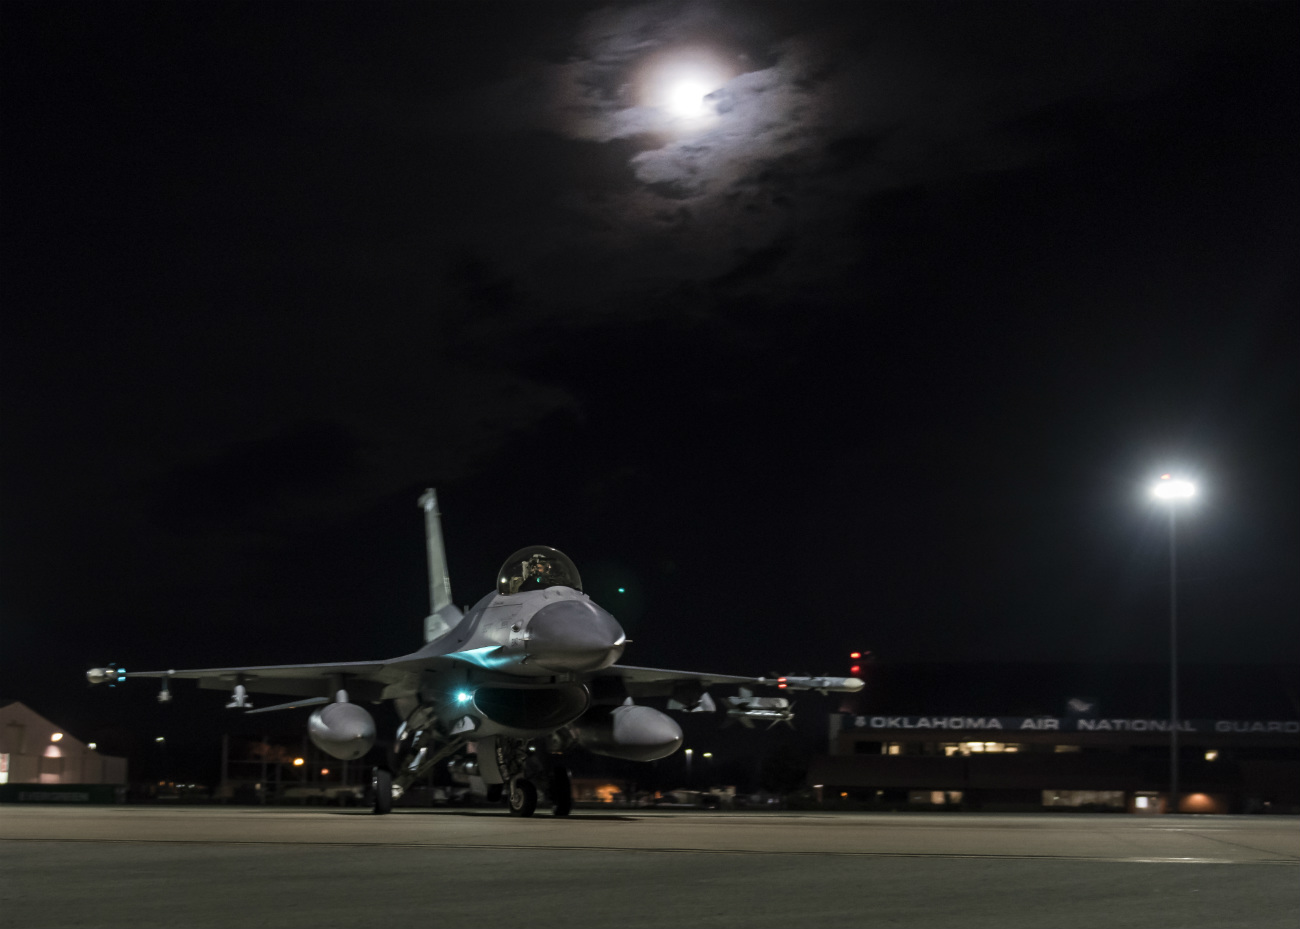 US Military Aircraft at Night Images - F-16 Fighting Falcon preparing for a flight